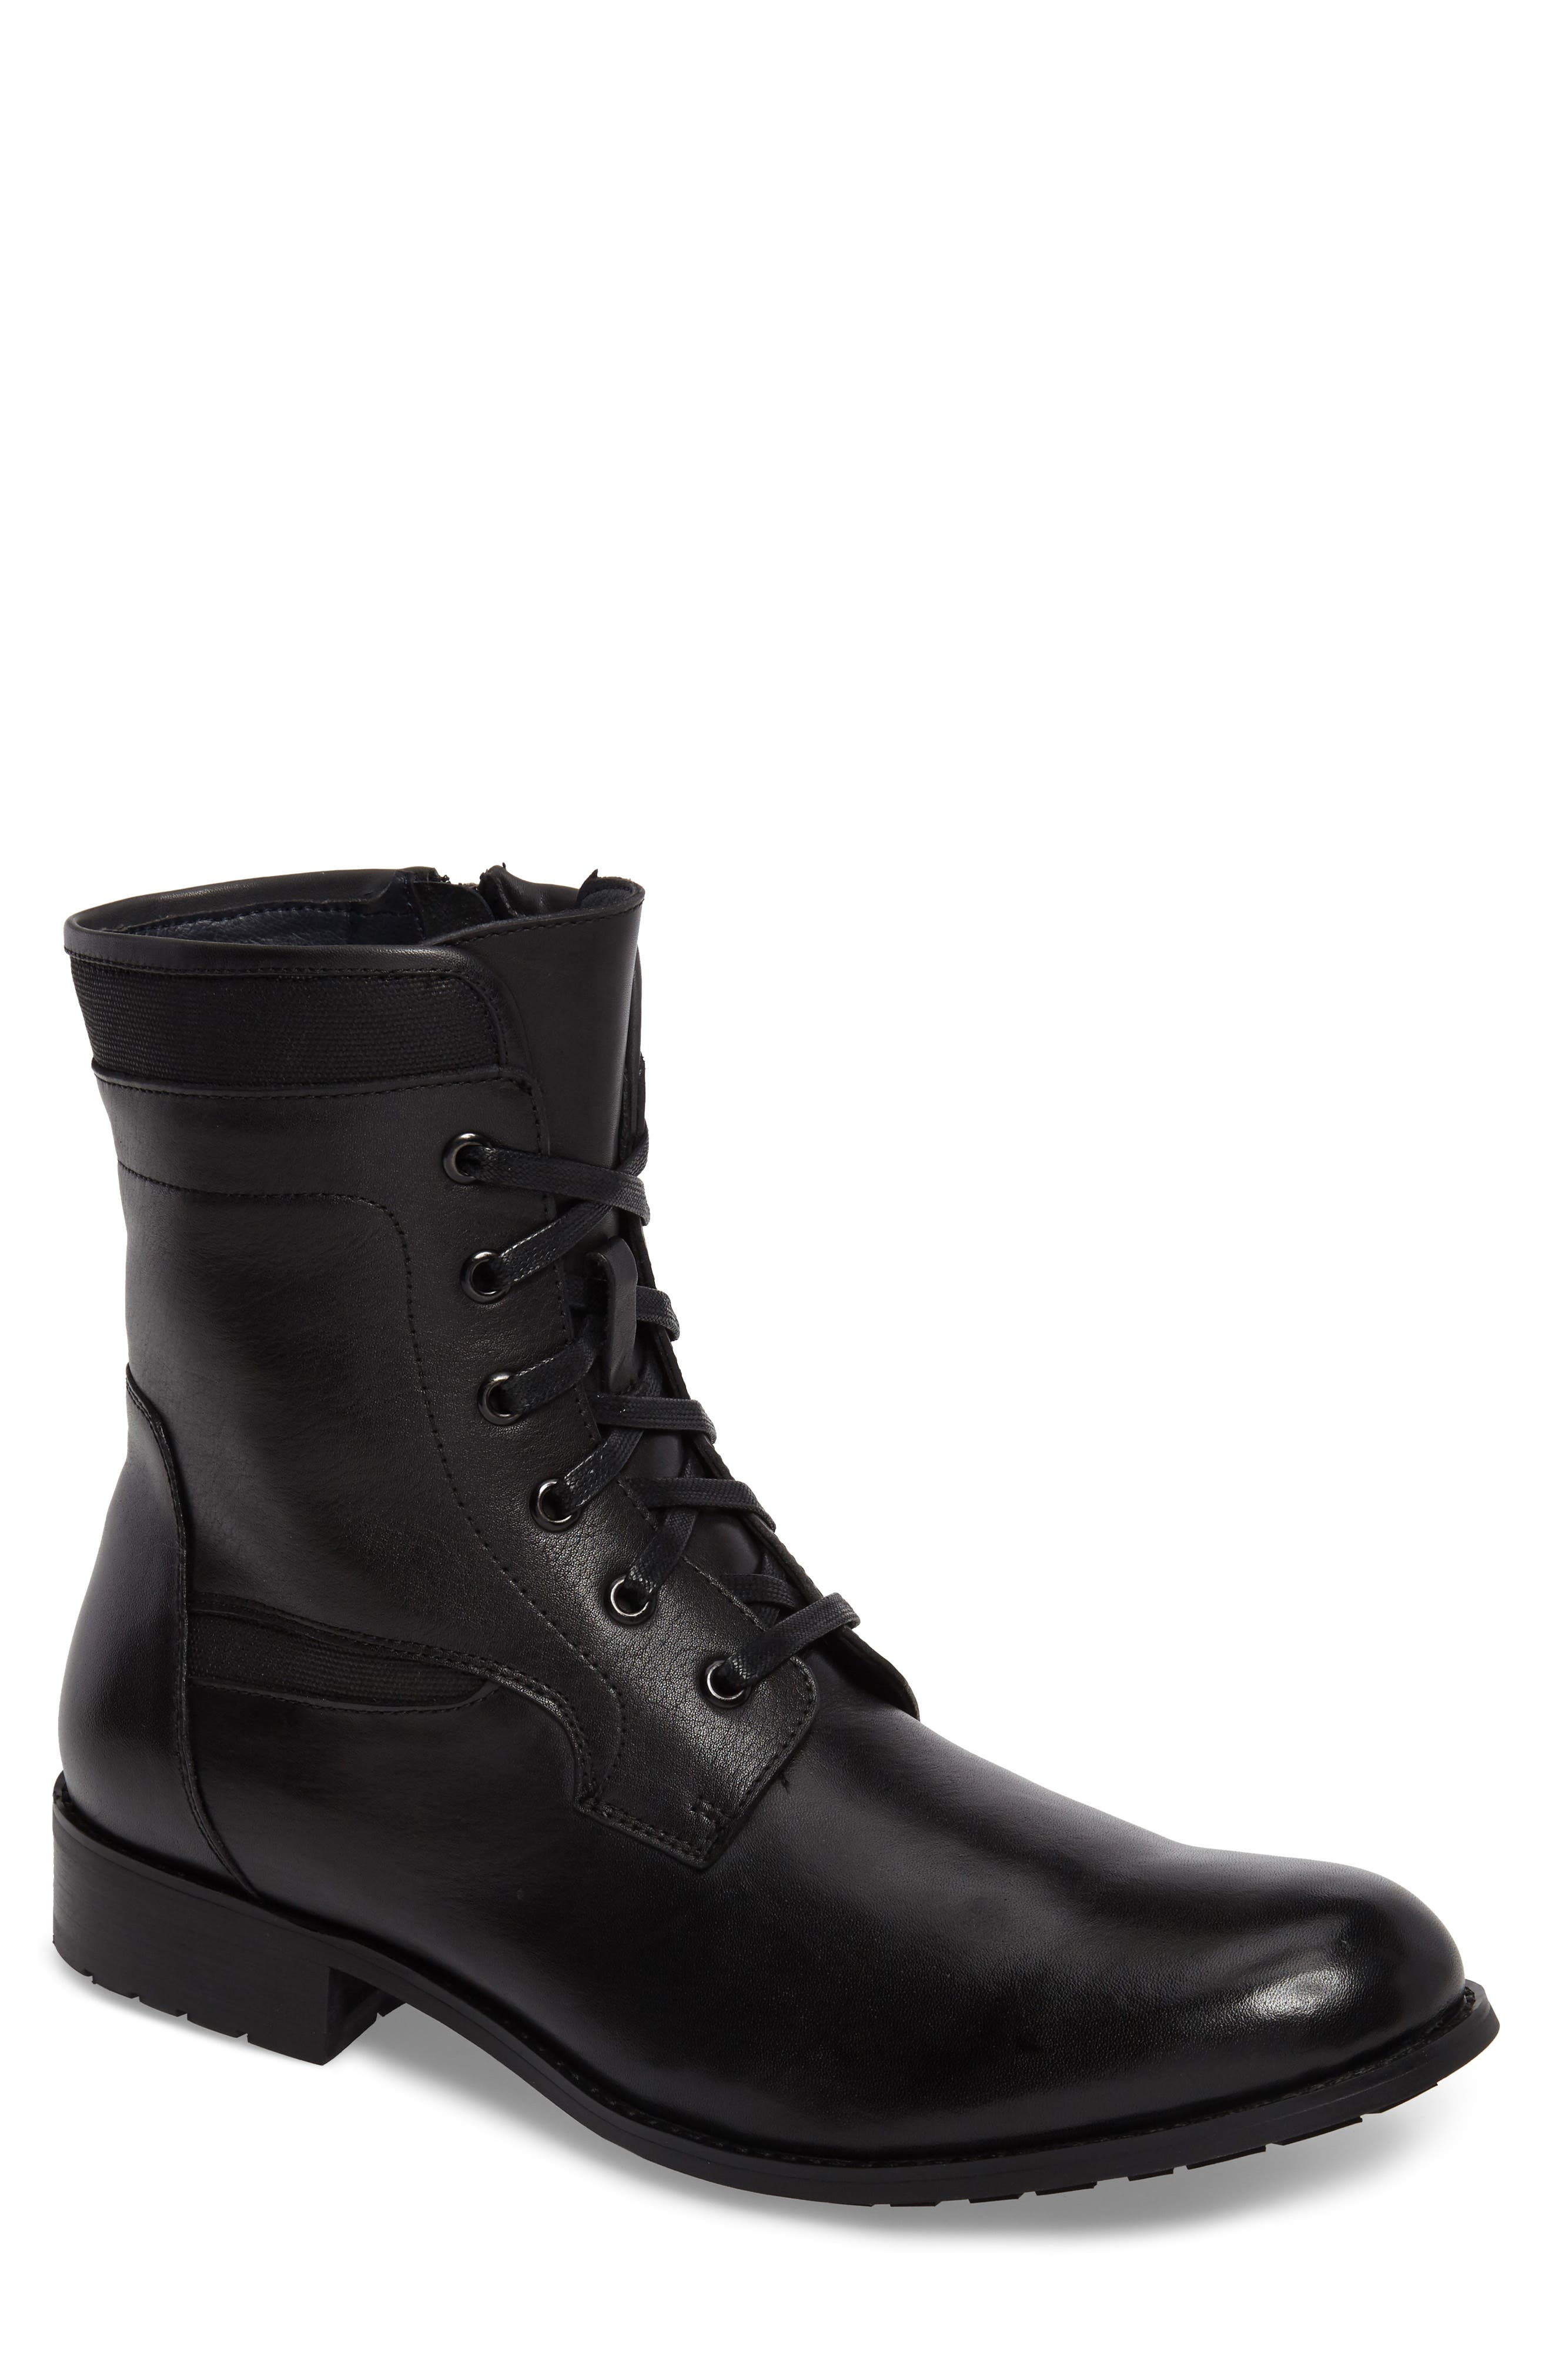 Page Plain Toe Boot,                         Main,                         color, 001